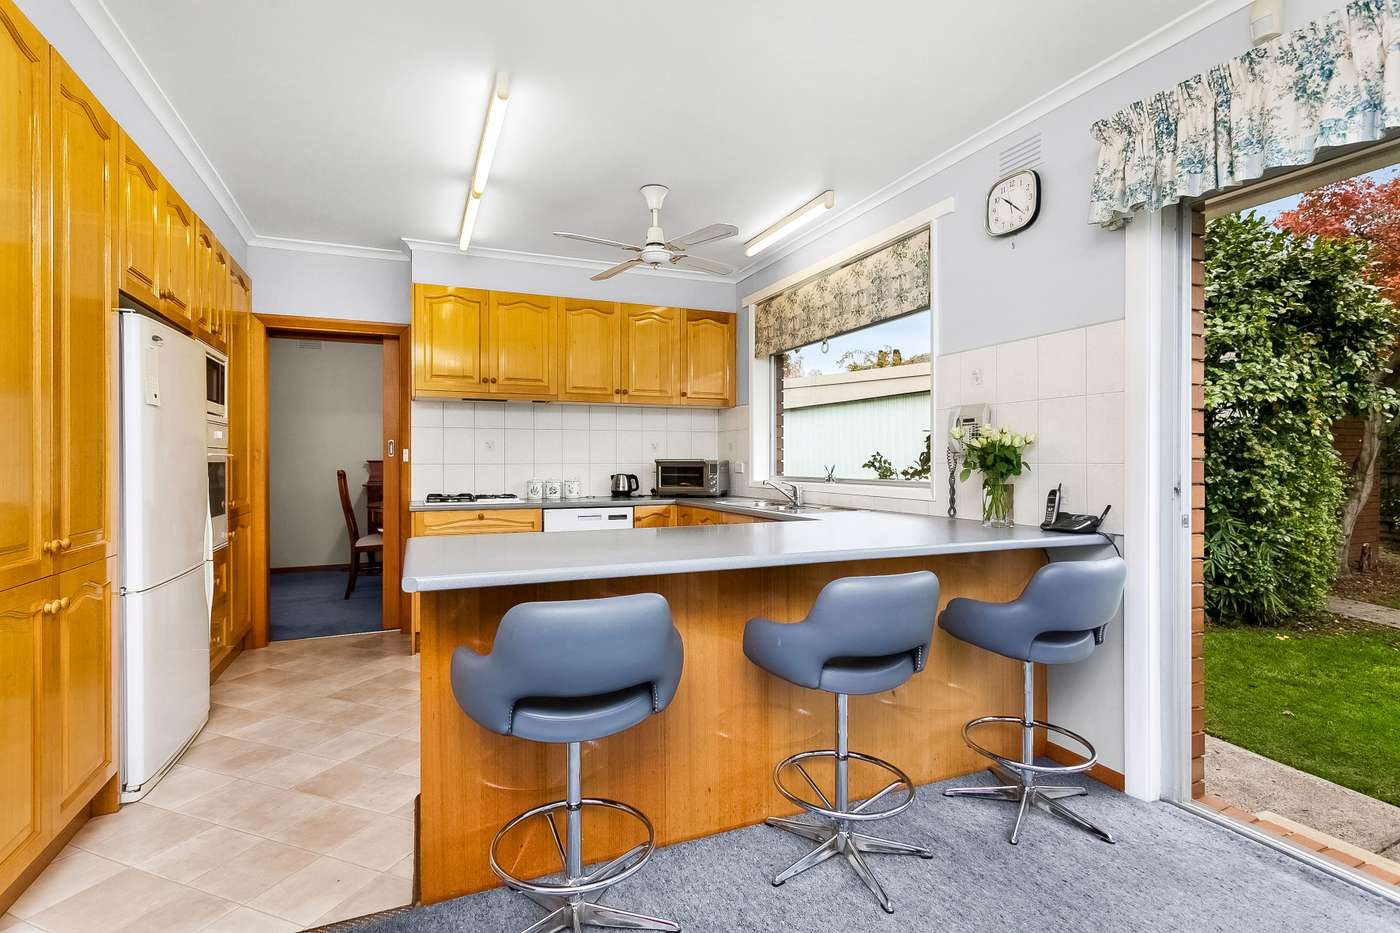 Main view of Homely house listing, 13 Baily Street, Mount Waverley, VIC 3149